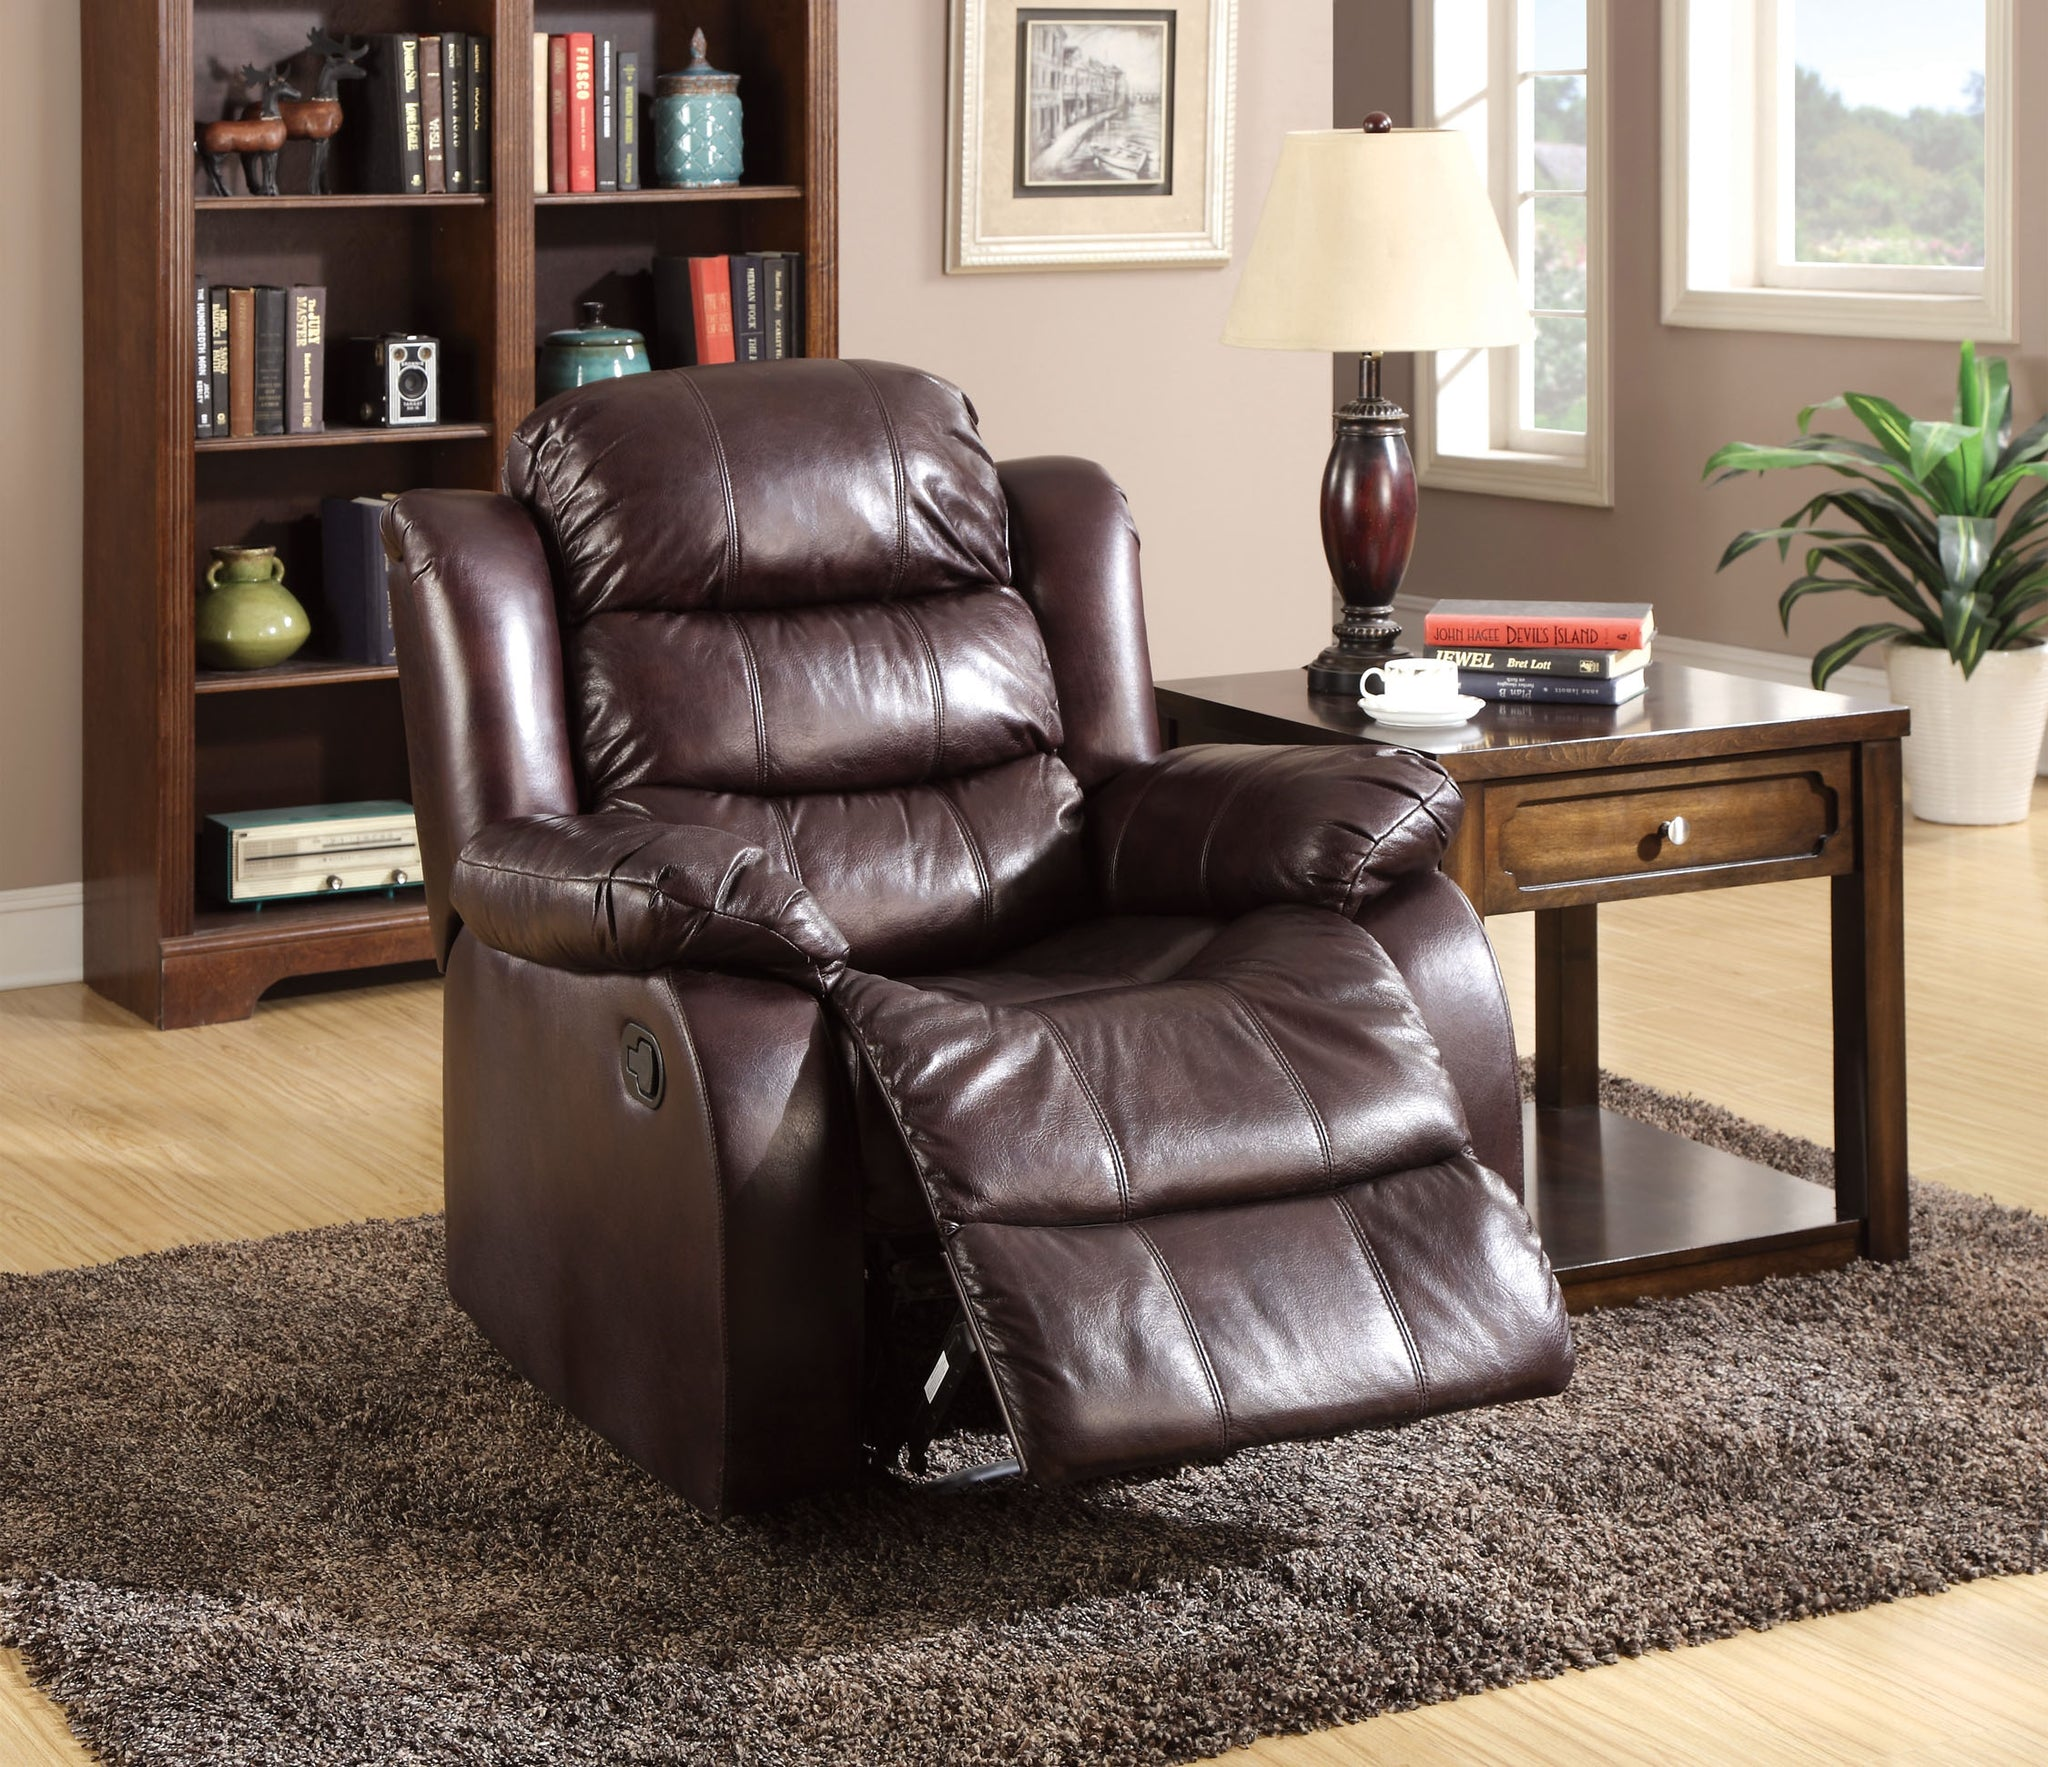 Sharpei Transitional Leather-like Recliner Chair, Rustic Dark Brown